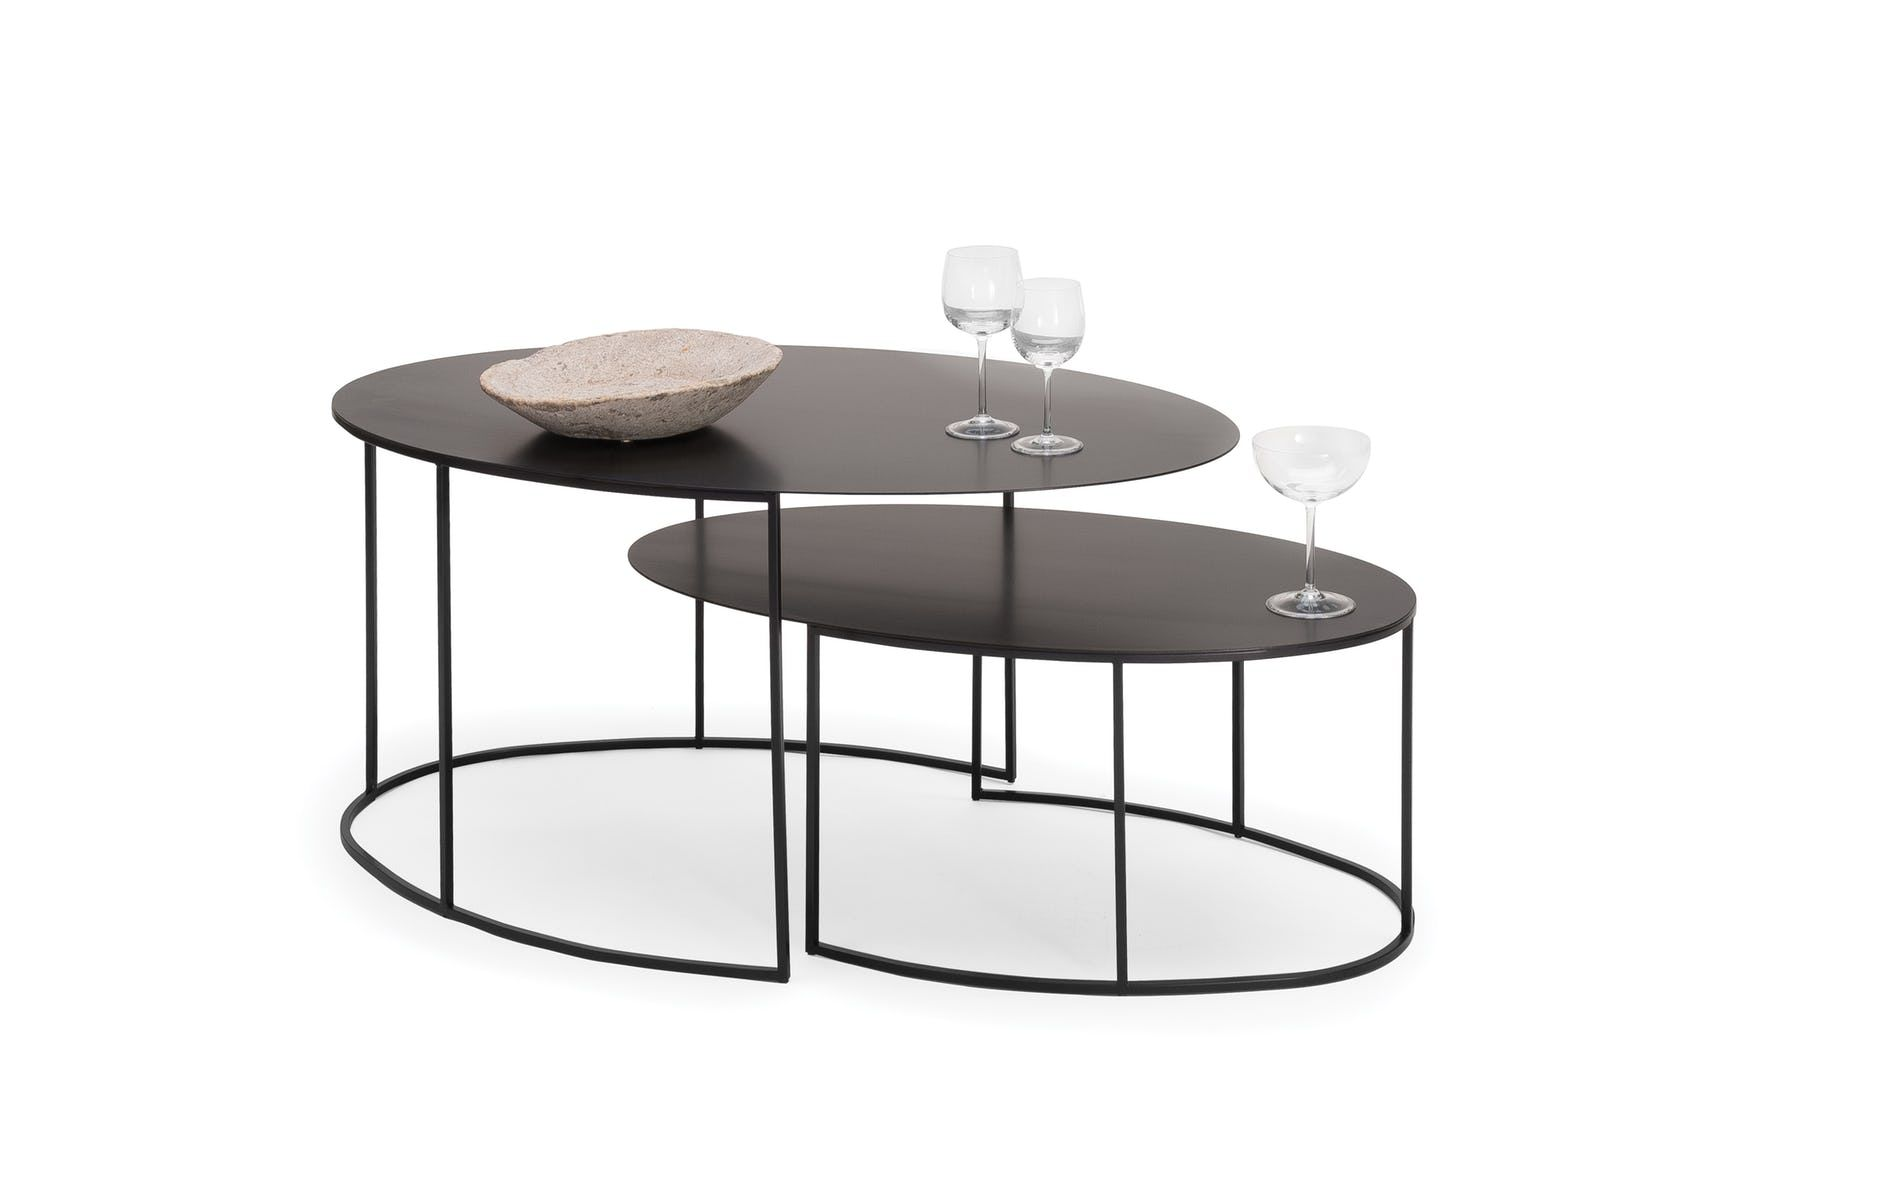 Two Low Tables With A Slim Profile The Slim Irony Oval Tables Complete The Collection Of The Same Name T Wohnzimmertische Couchtisch Modern Tisch